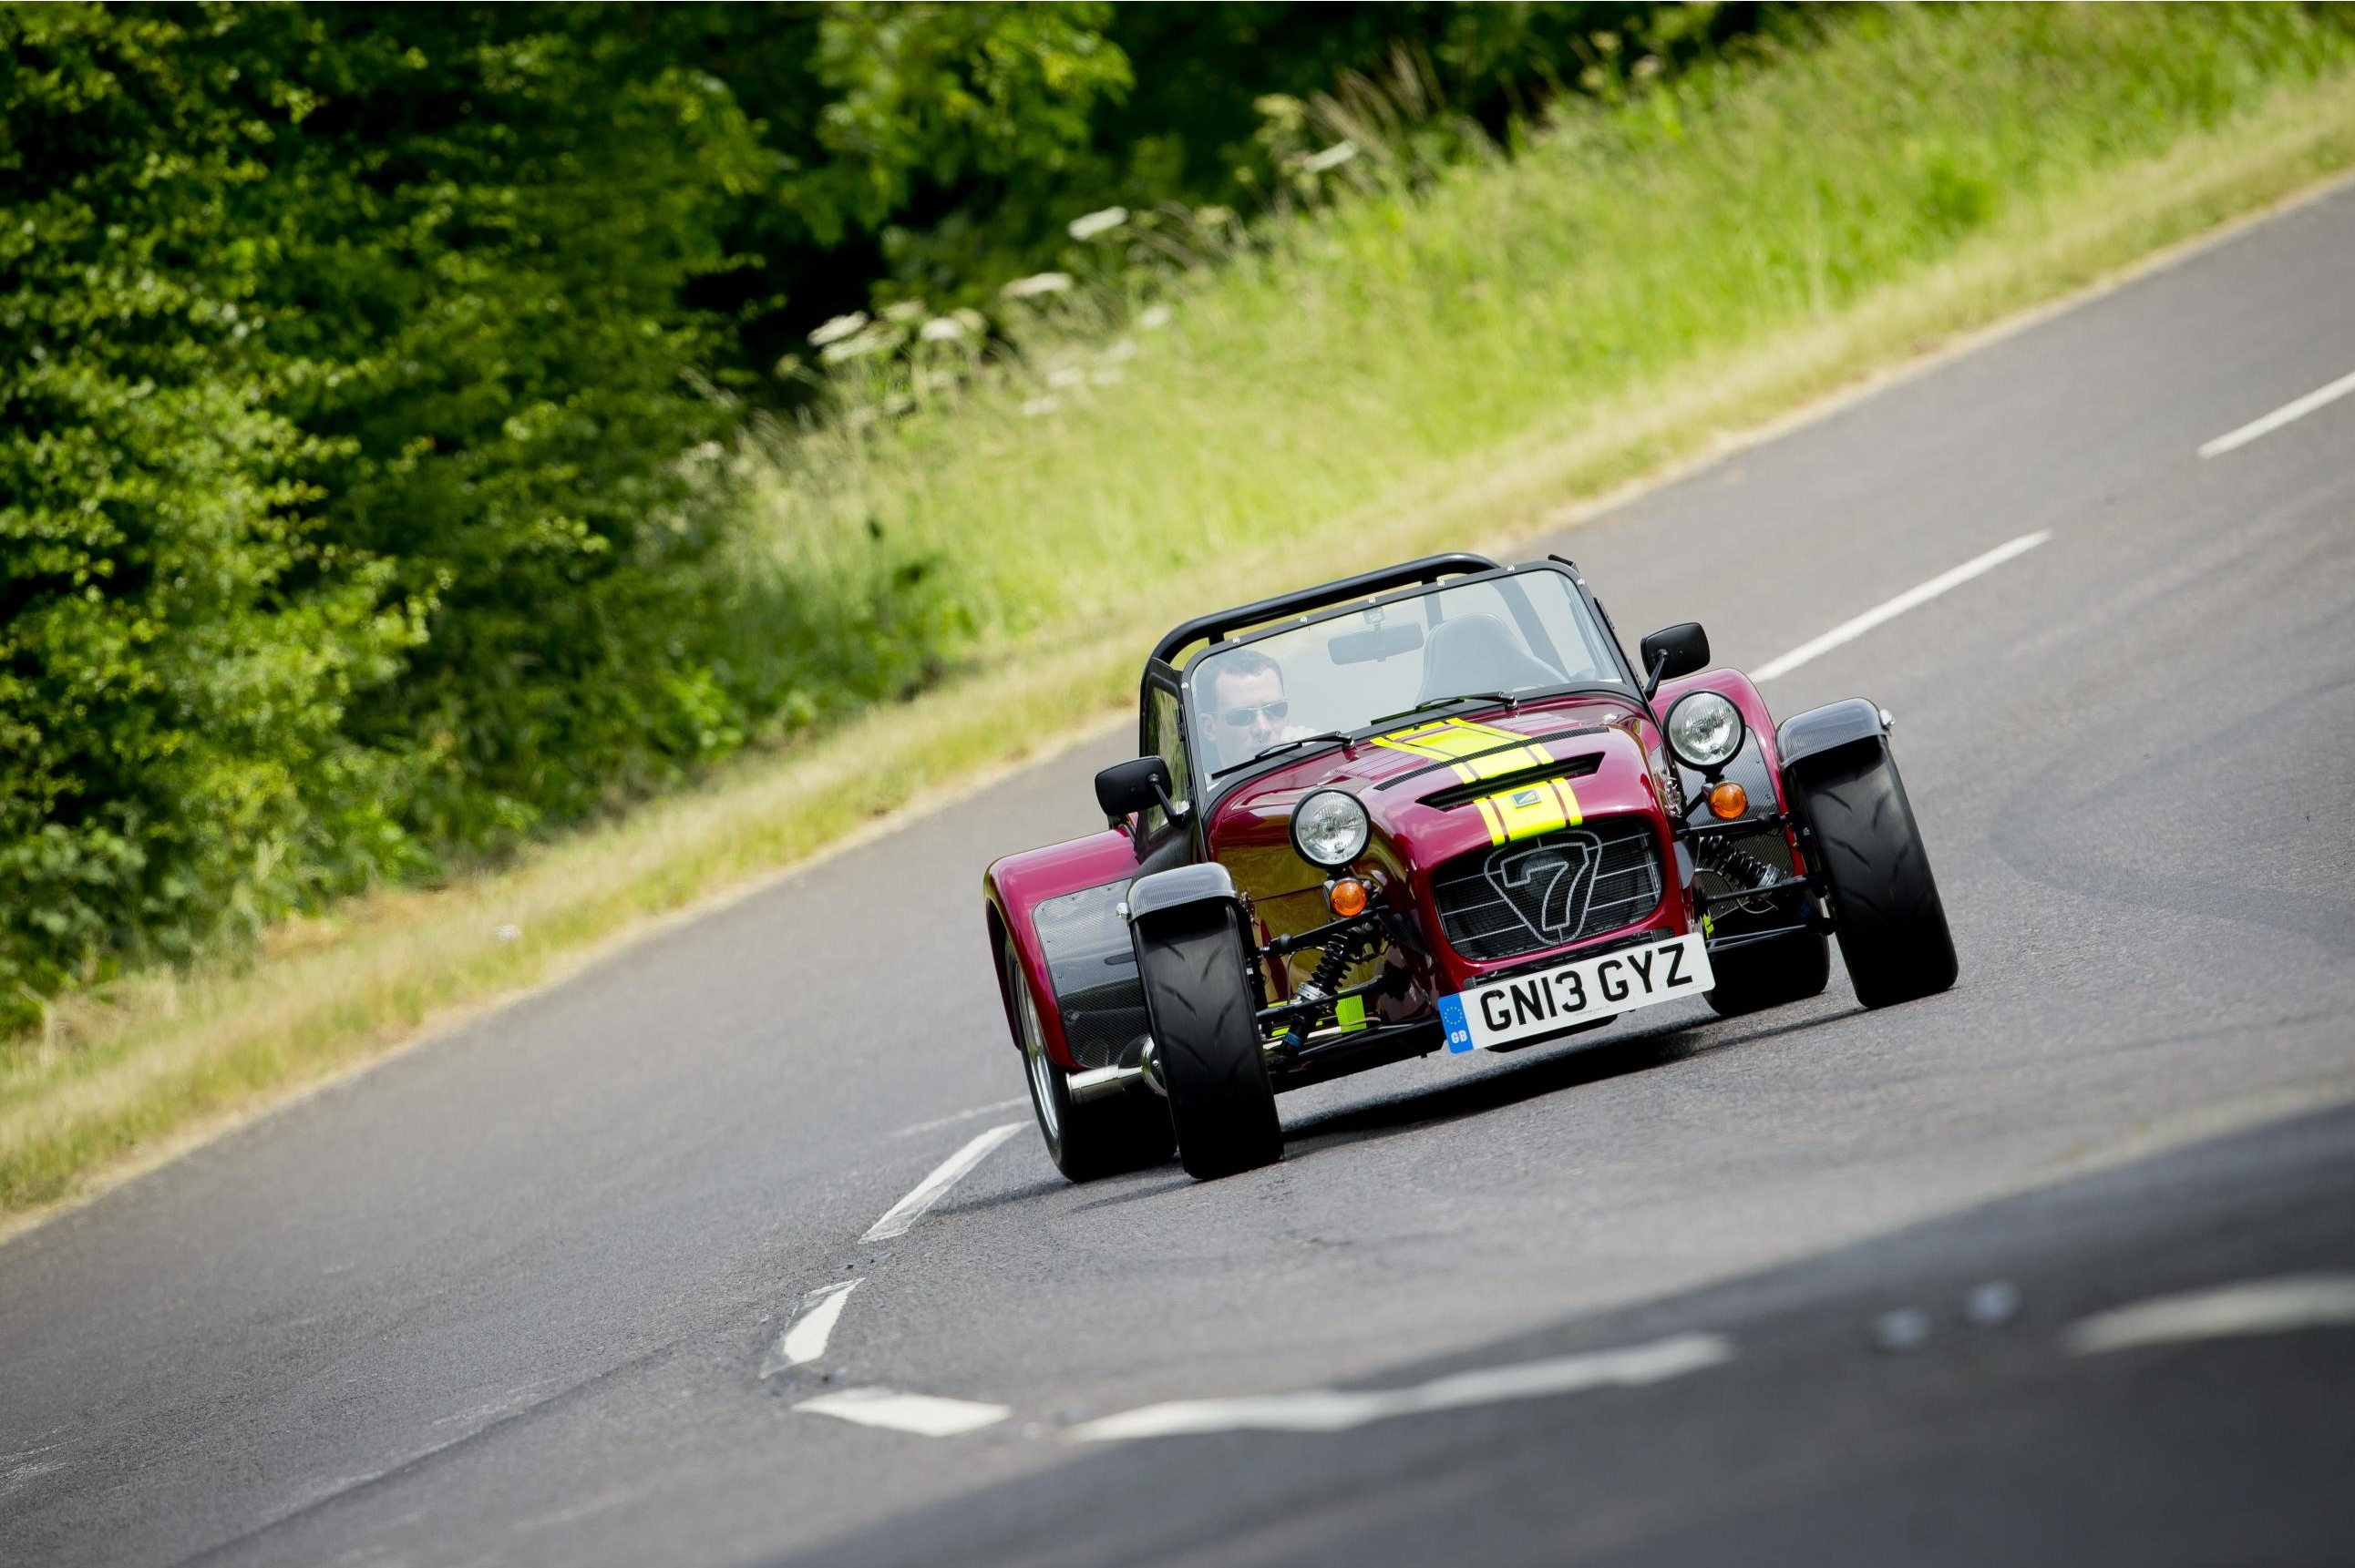 Caterham Seven 620R on the road